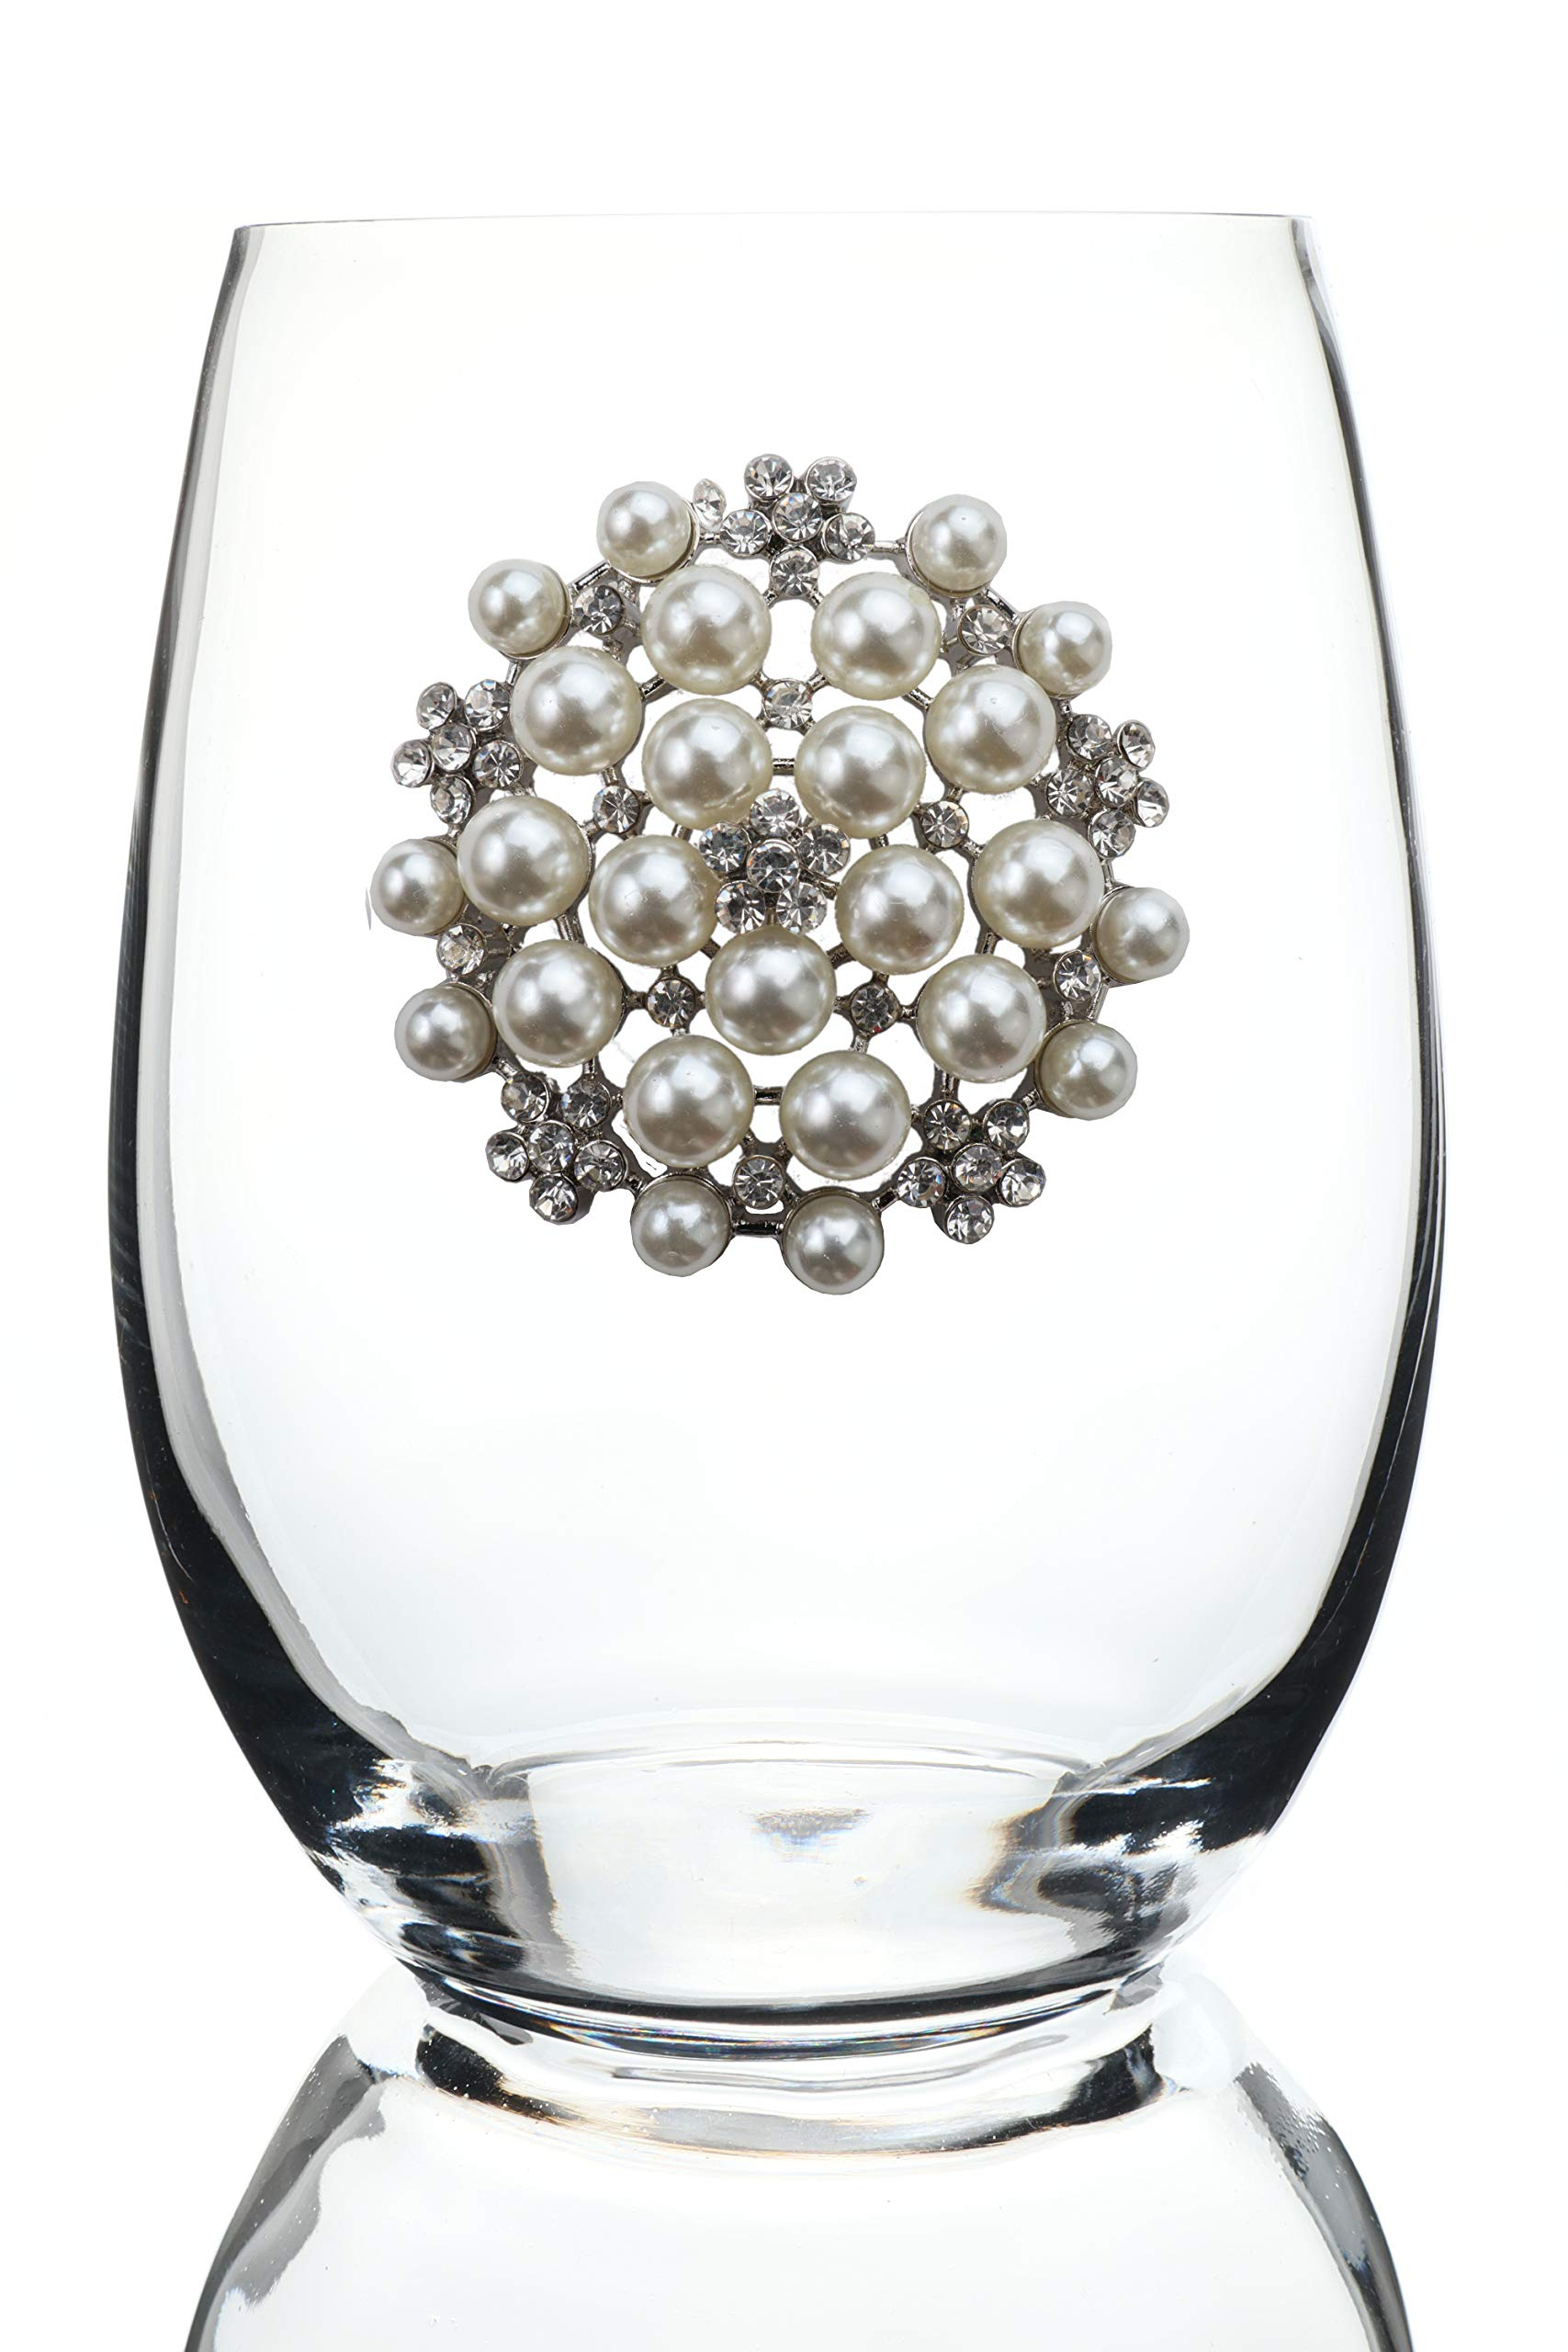 THE QUEENS' JEWELS Round Pearl Jeweled Stemless Wine Glass - Unique Gift for Women, Birthday, Cute, Fun, Not Painted, Decorated, Bling, Bedazzled, Rhinestone